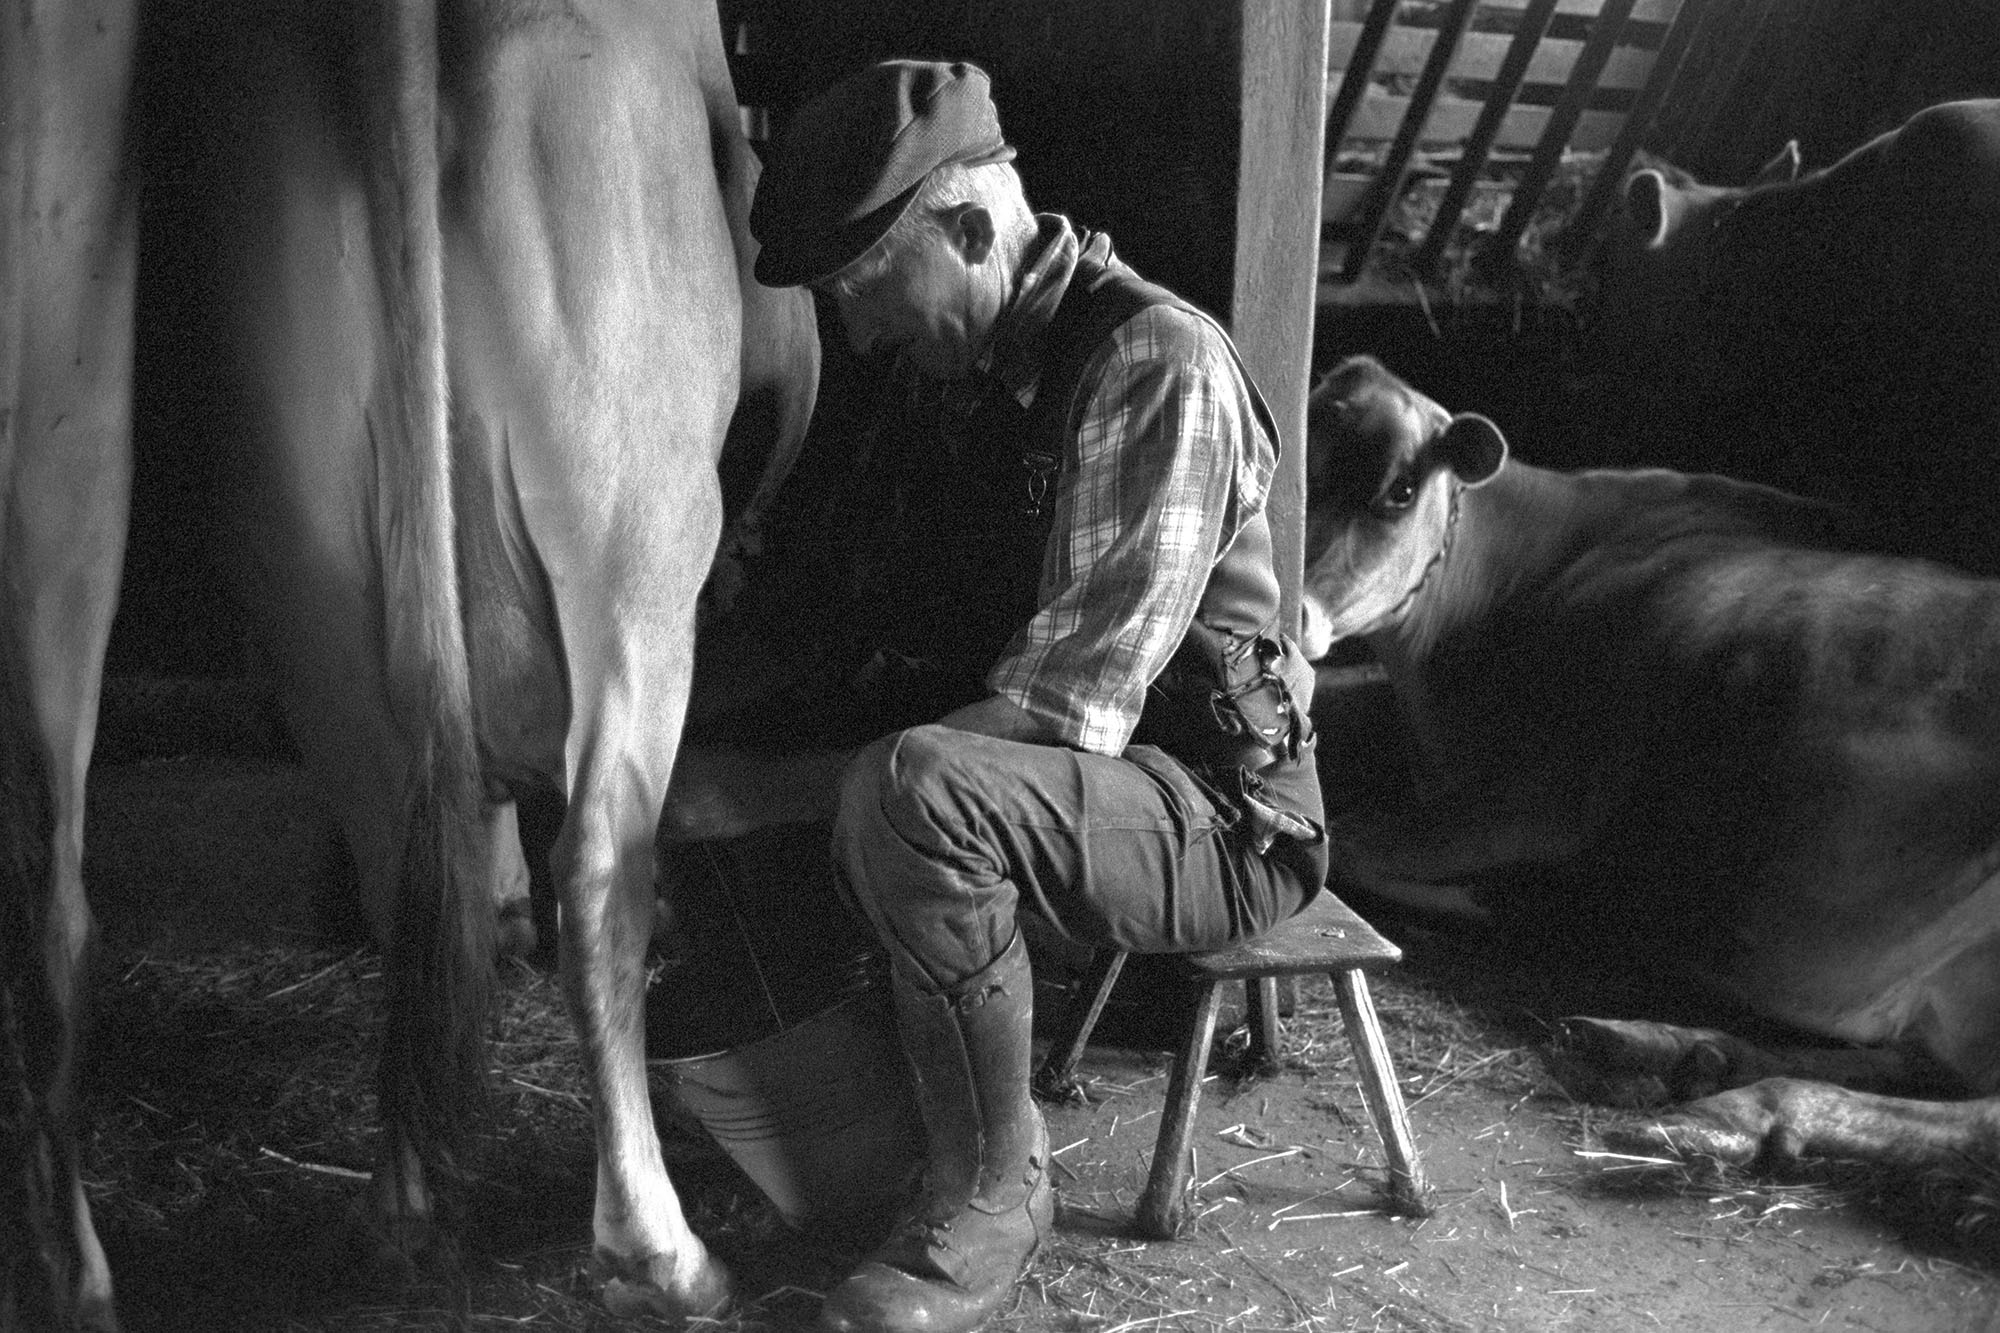 Farmer milking cow by hand.<br /> [Gordon Sanders sitting on a stool milking a cow by hand, at Reynards Park, Ashreigney. Two other cows are in the next stall in the milking parlour.]